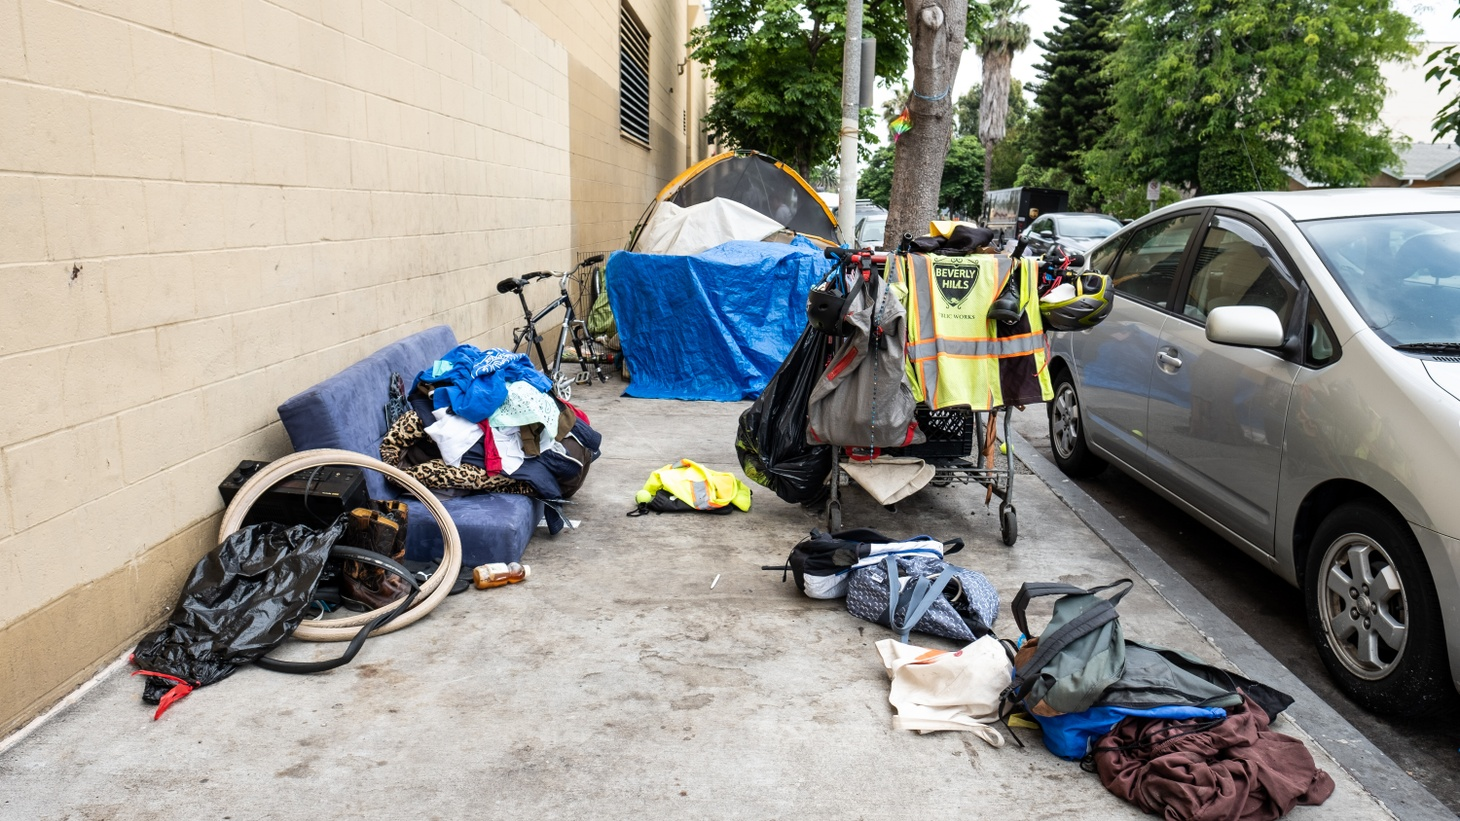 A homeless camp in Culver City, June 6, 2019.